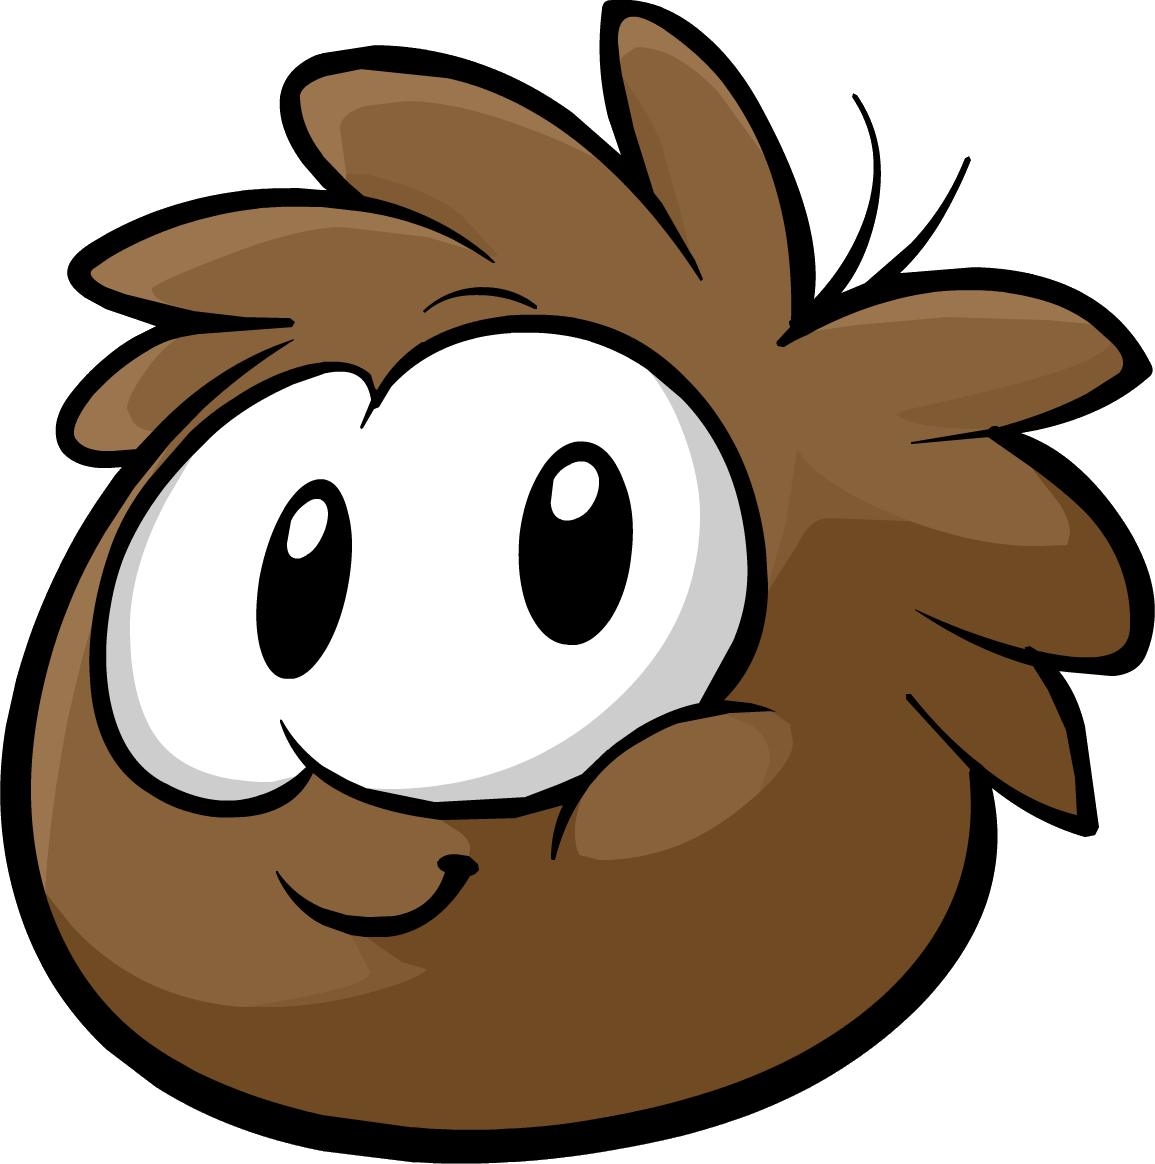 How To Draw A Puffle From Club Penguin Brown Puffle - It was